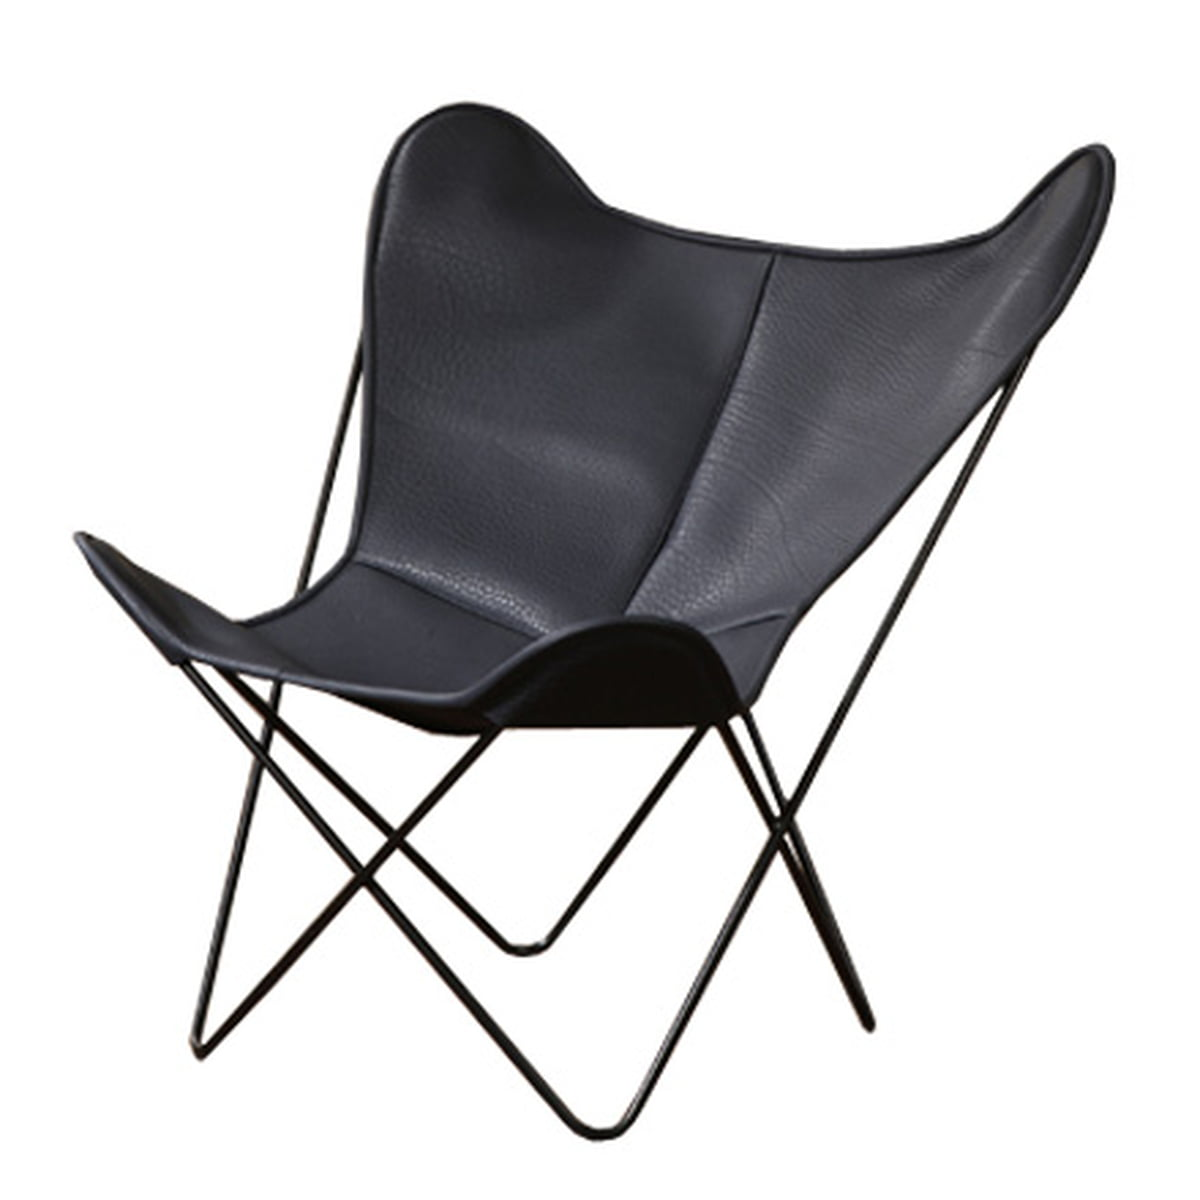 Butterfly chair black - Manufakturplus Butterfly B K F Chair